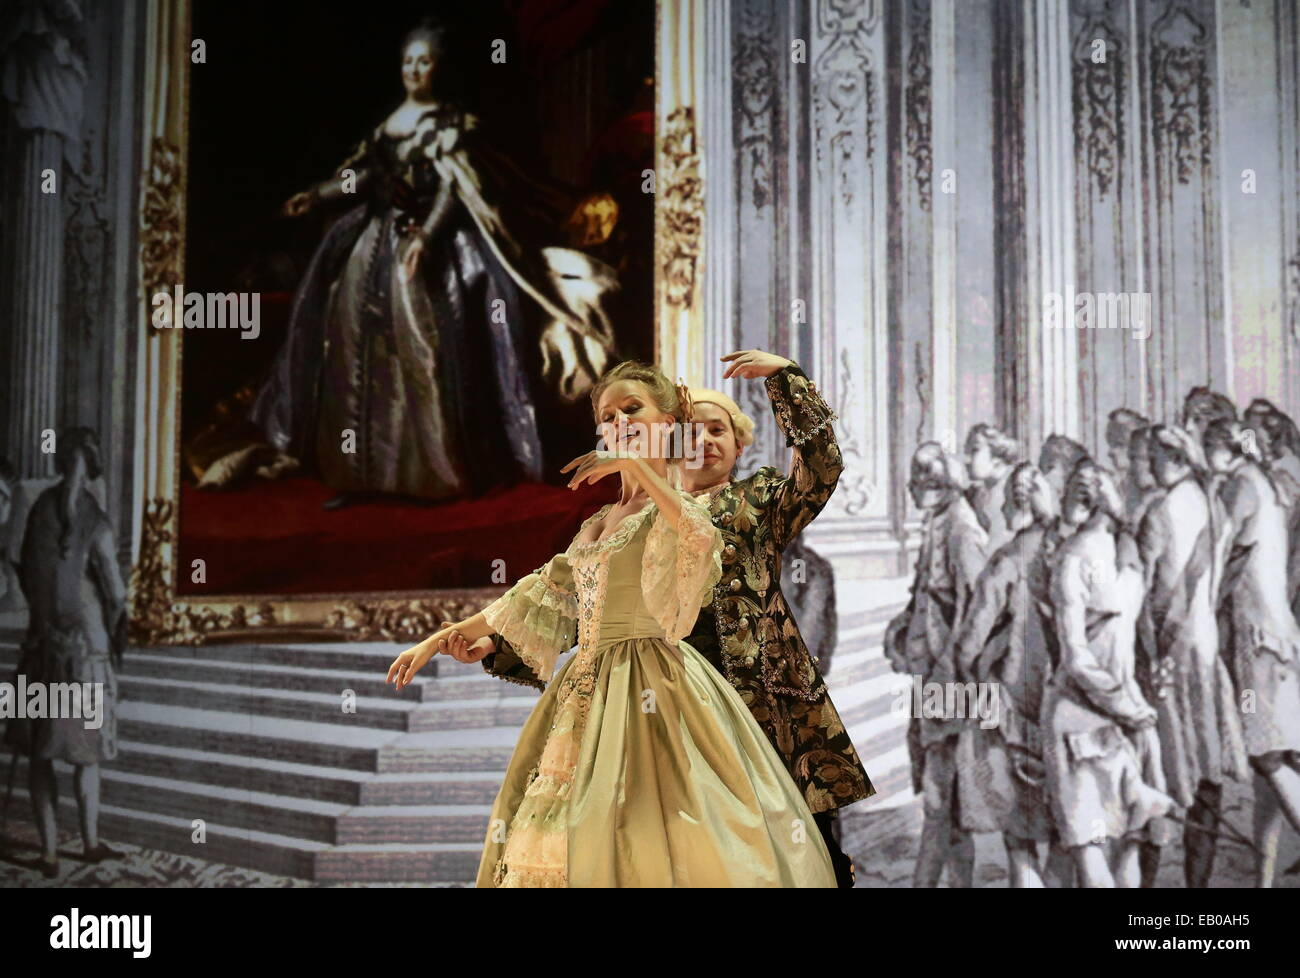 St. Petersburg, Russia. 22nd Nov, 2014. People wearing historical costume dance during the 'Animated' Ball - Stock Image